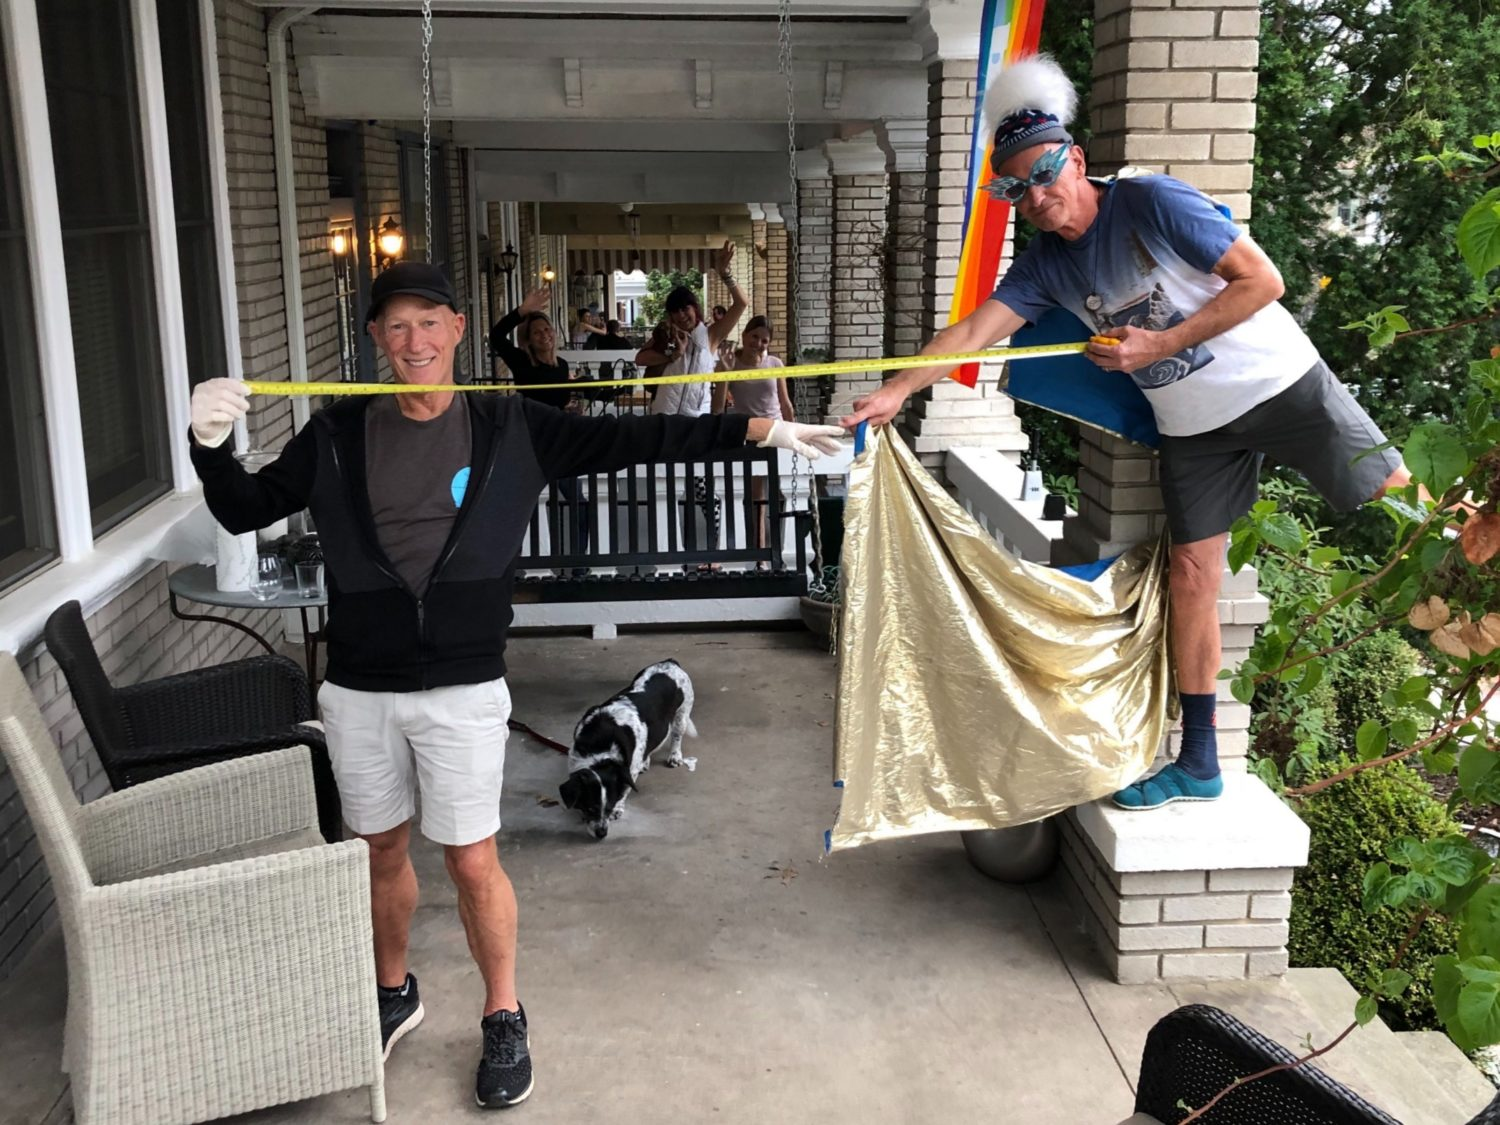 6 Feet 6 stoop sings, scavenger hunts and bagpipes: how neighbors